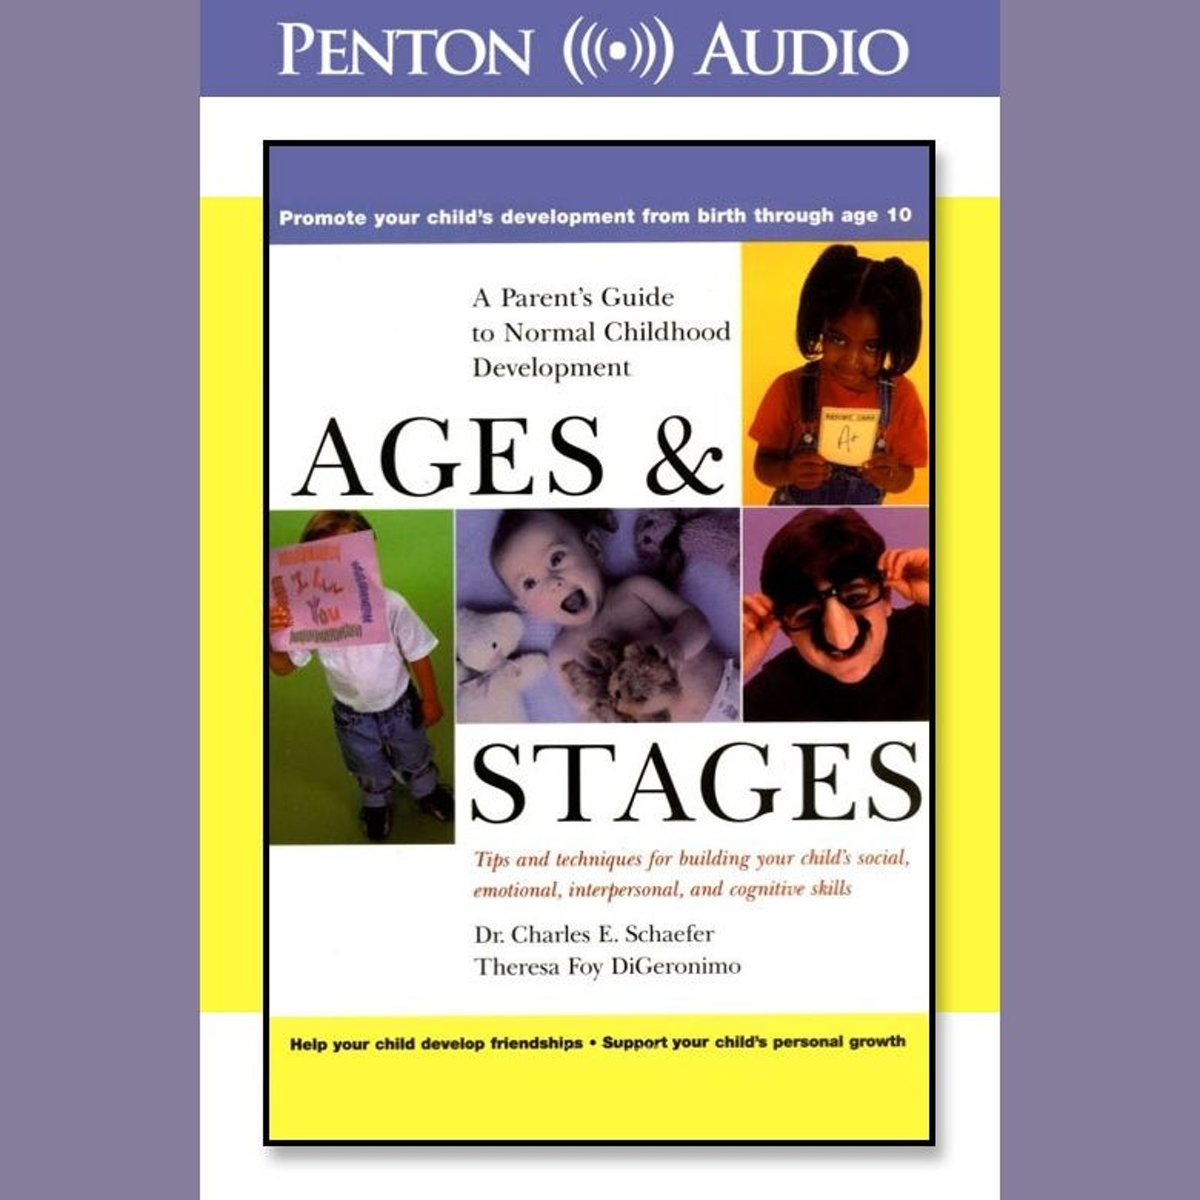 Ages & Stages